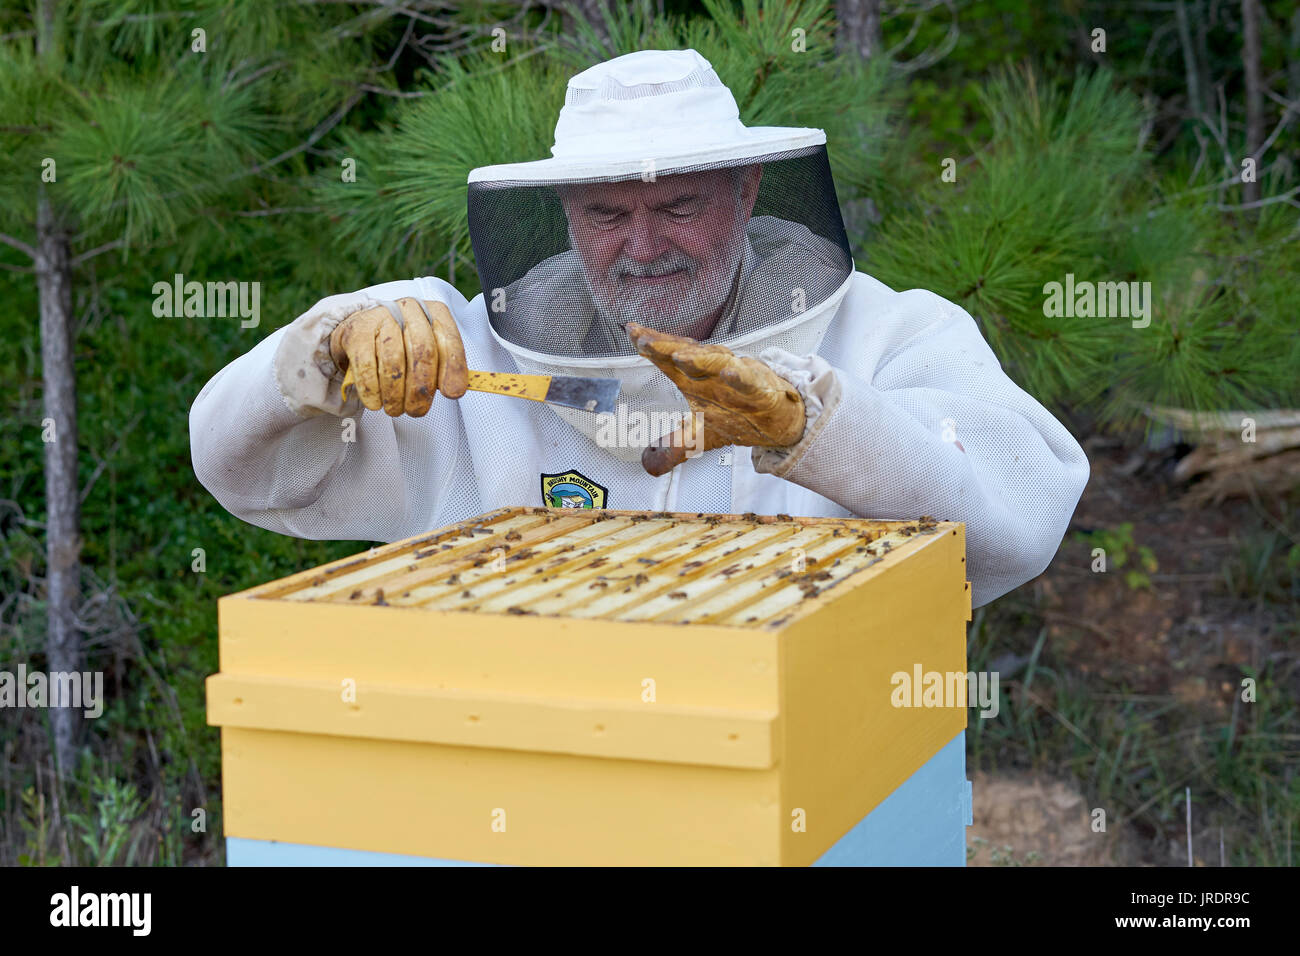 Jim Butler winces as he's stung through his glove on his left hand. The protective gear is helpful, but doesn't stop the bees from stinging.  The Butl - Stock Image